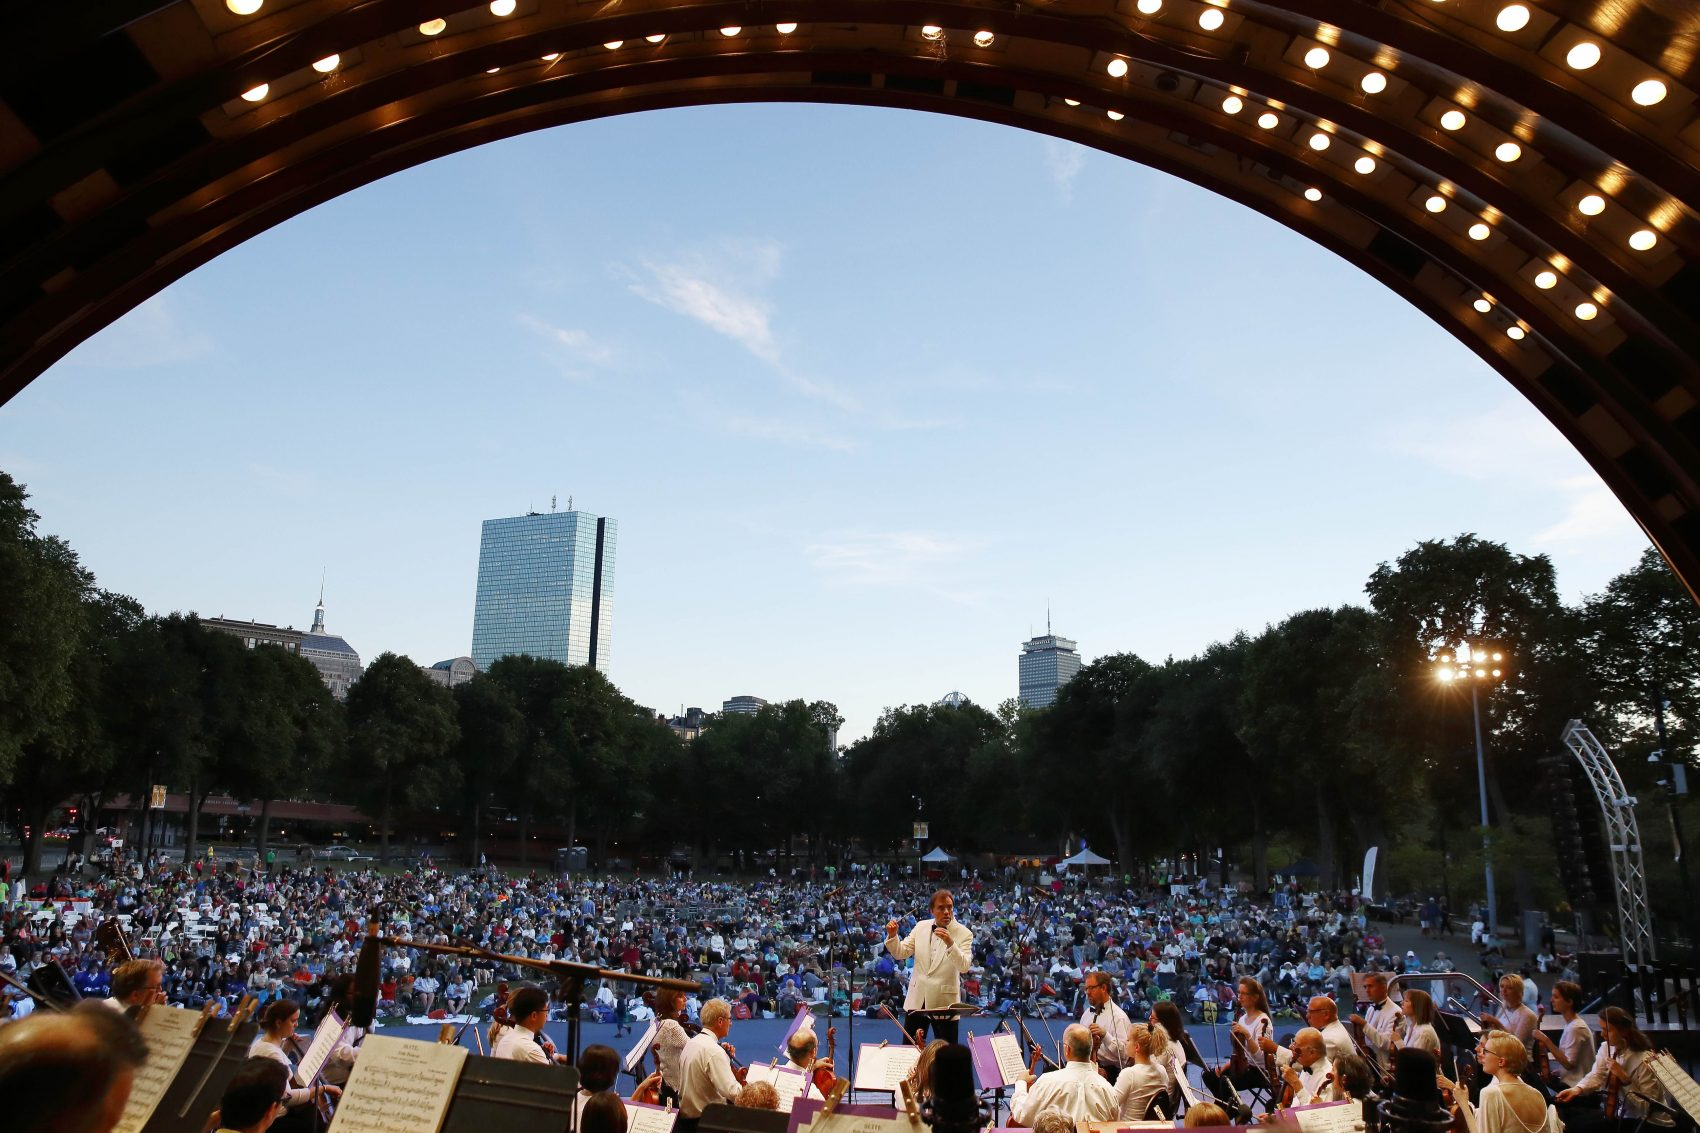 Free Concert At Hatch Shell July 30th >> 14 Summer Spots To Take In Classical Music The Artery